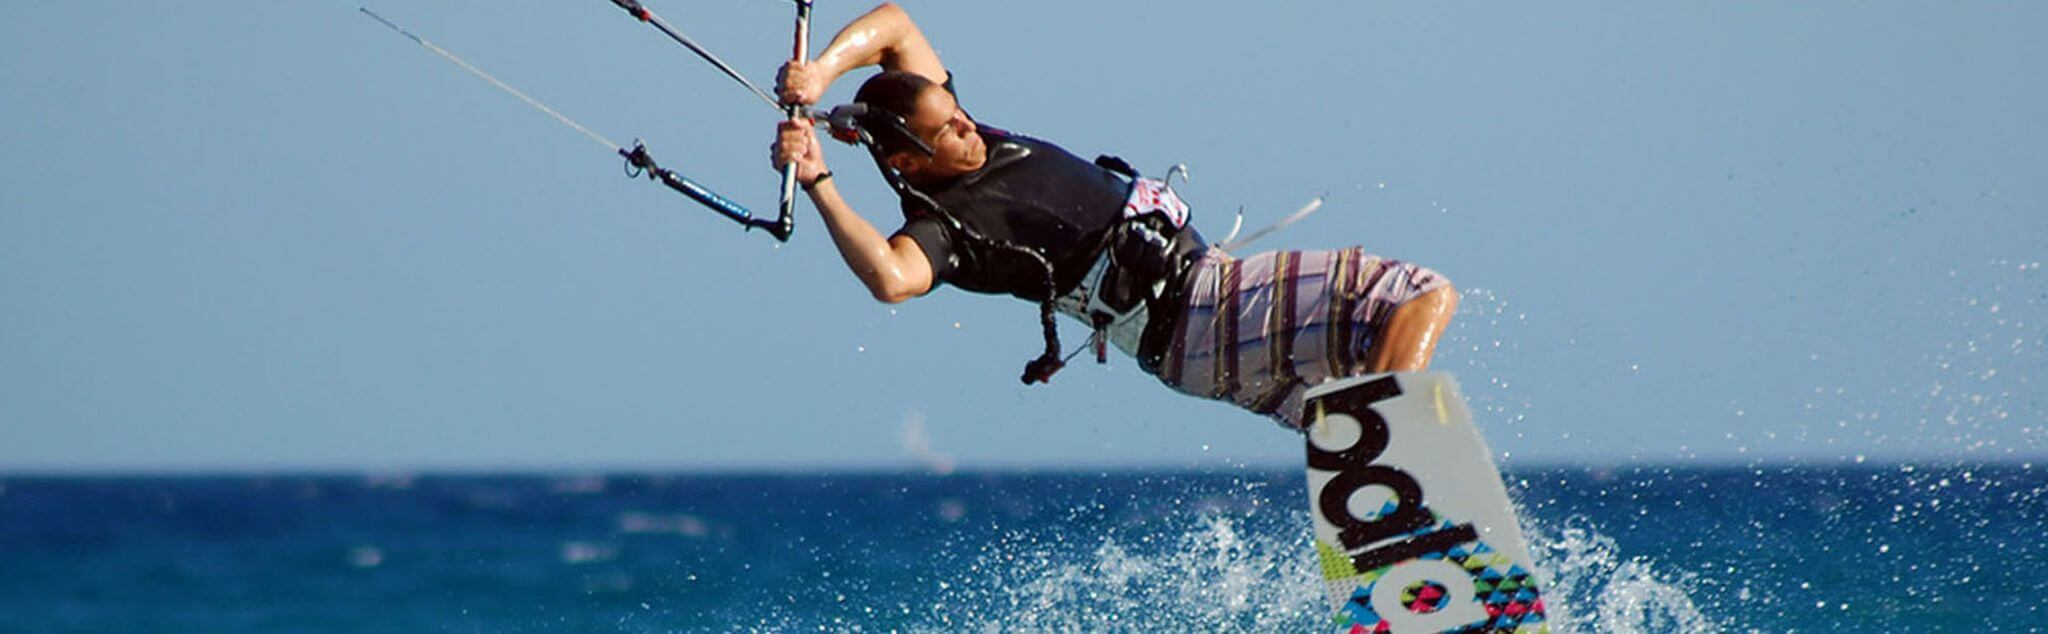 Kitesurf en Churriana